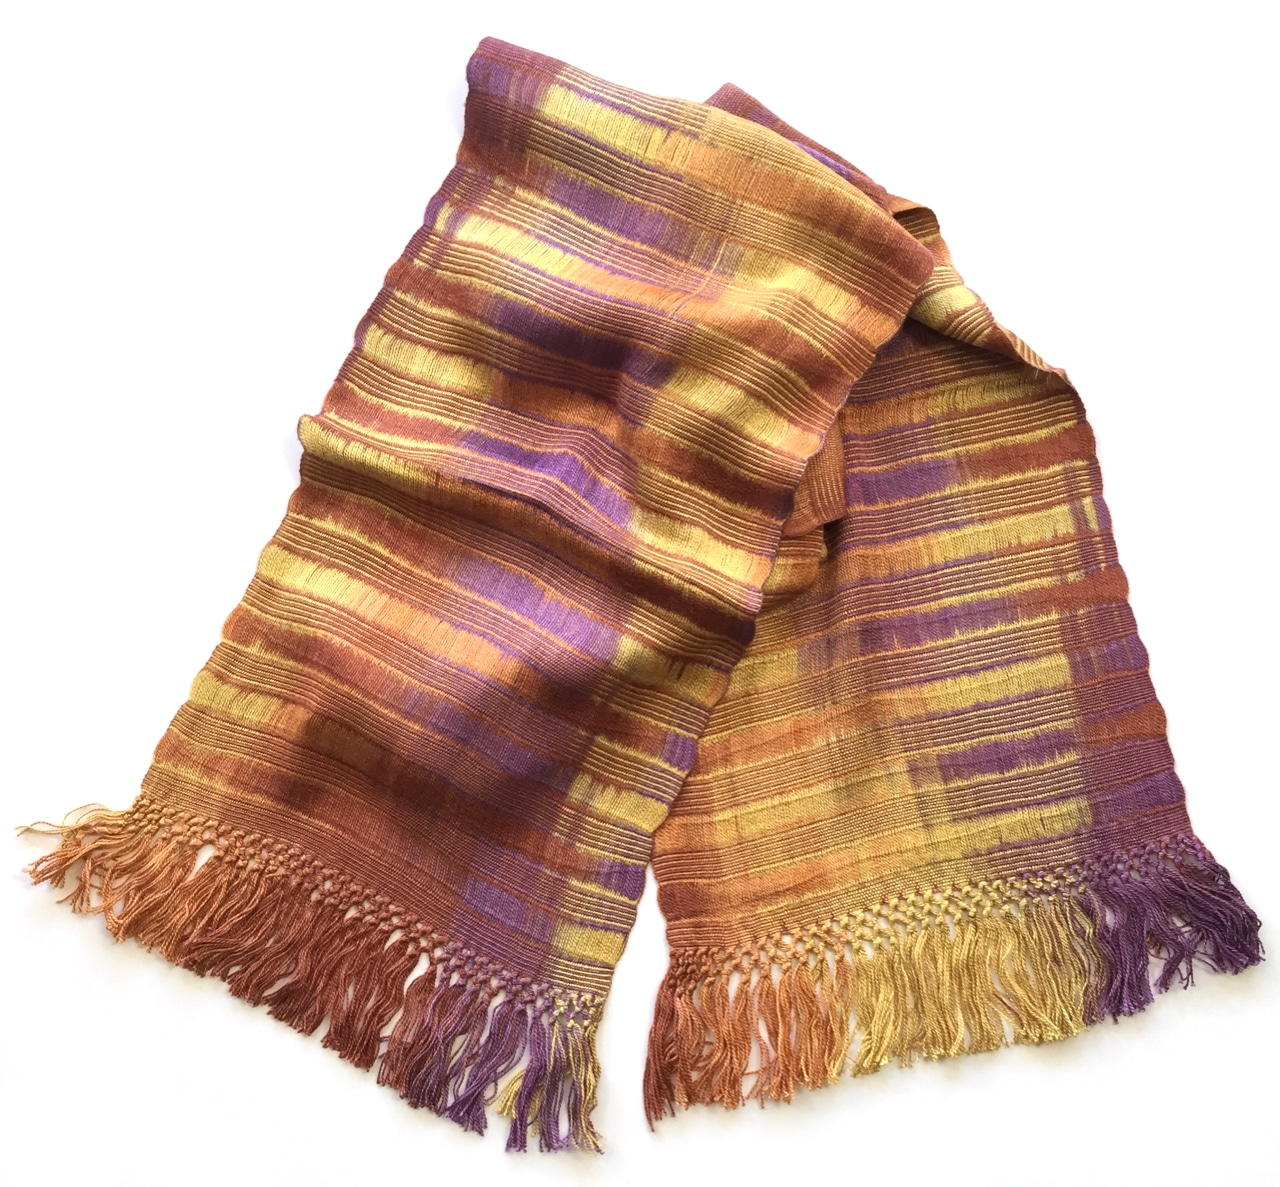 Gold, Orange, Coral, Purple - Lightweight Bamboo Open-Weave Handwoven Scarf 8 x 68